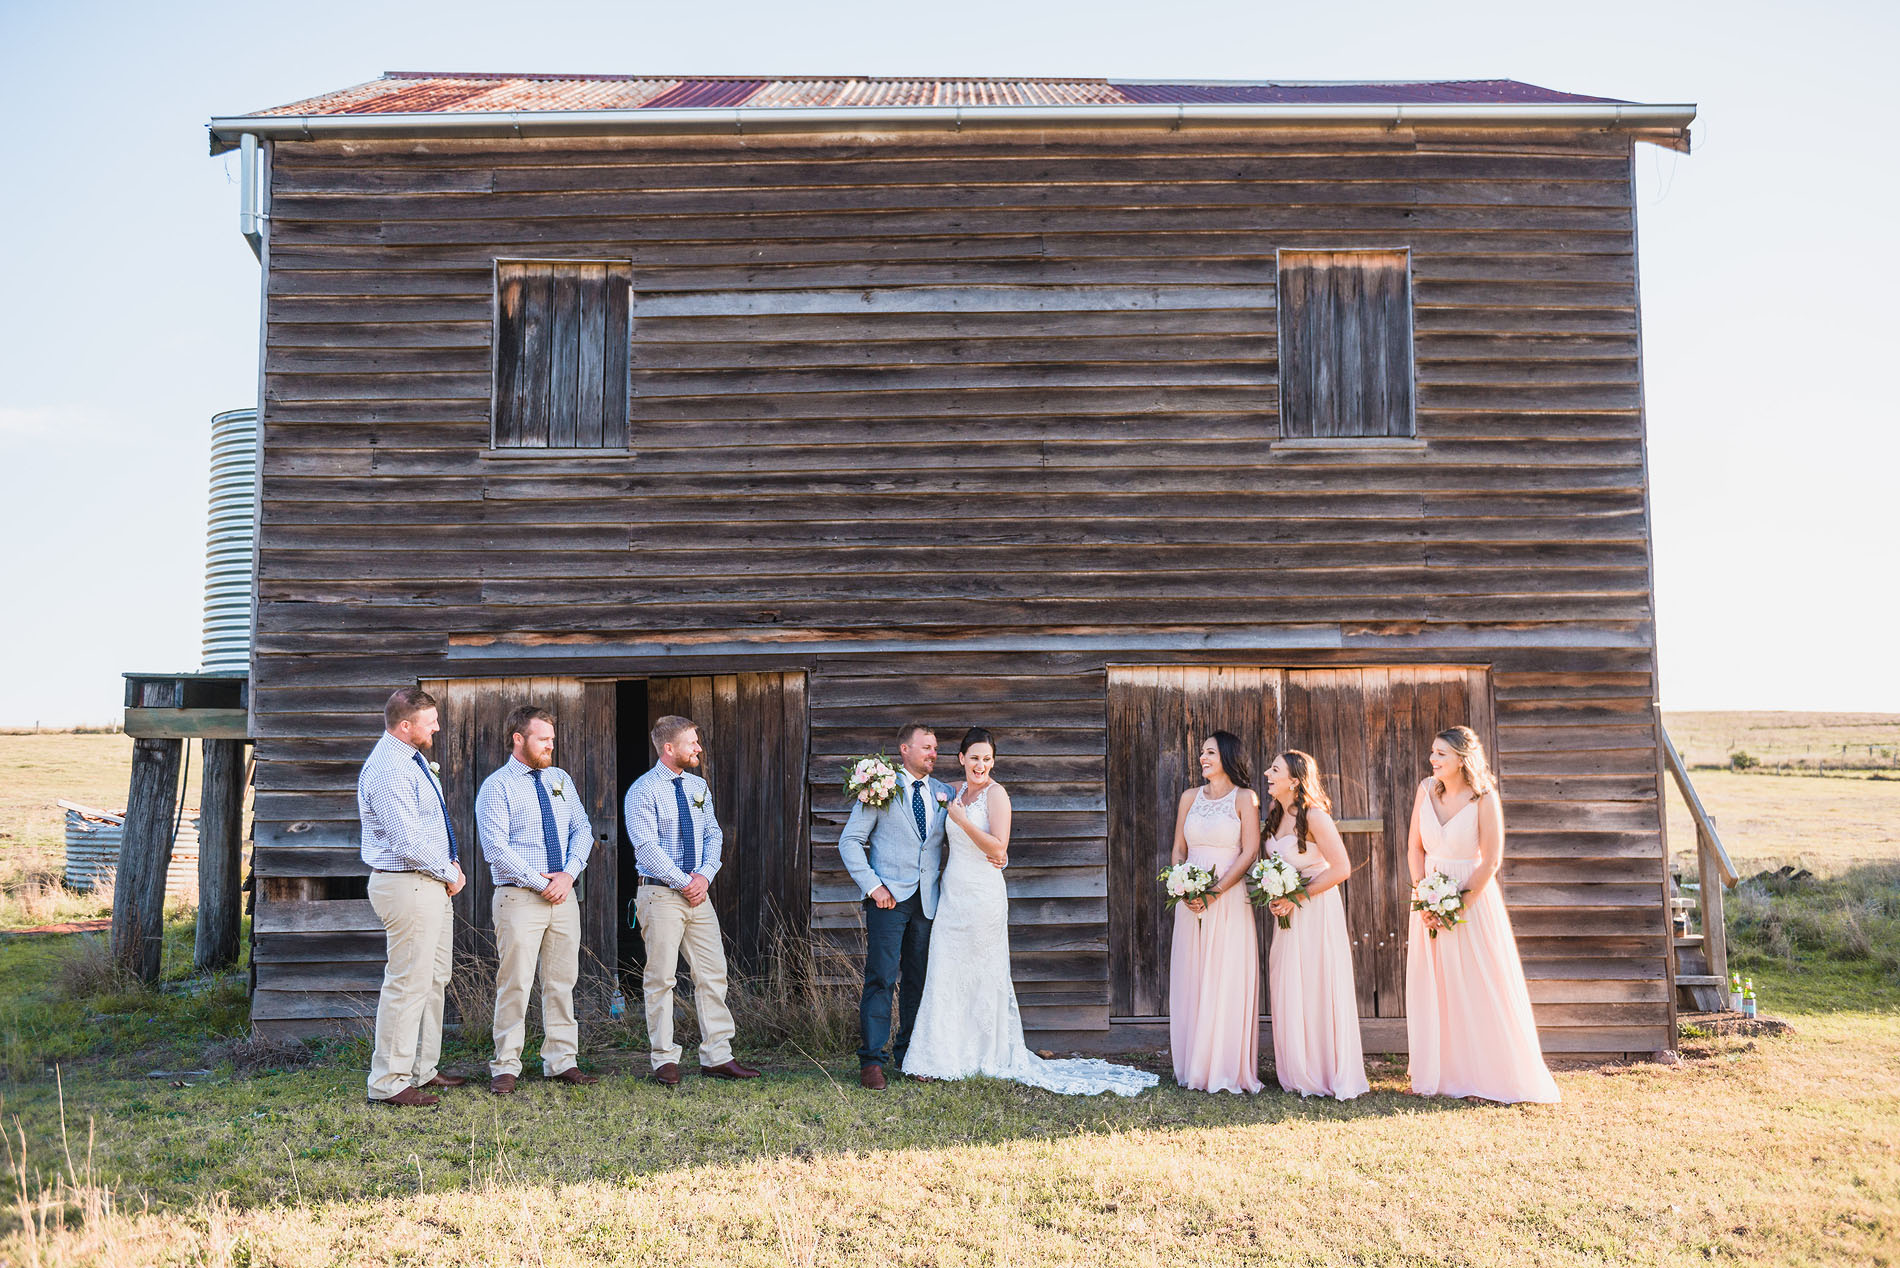 181110 0691 bebes farmhouse somerset dam old shed farm paddock rusty bridal party